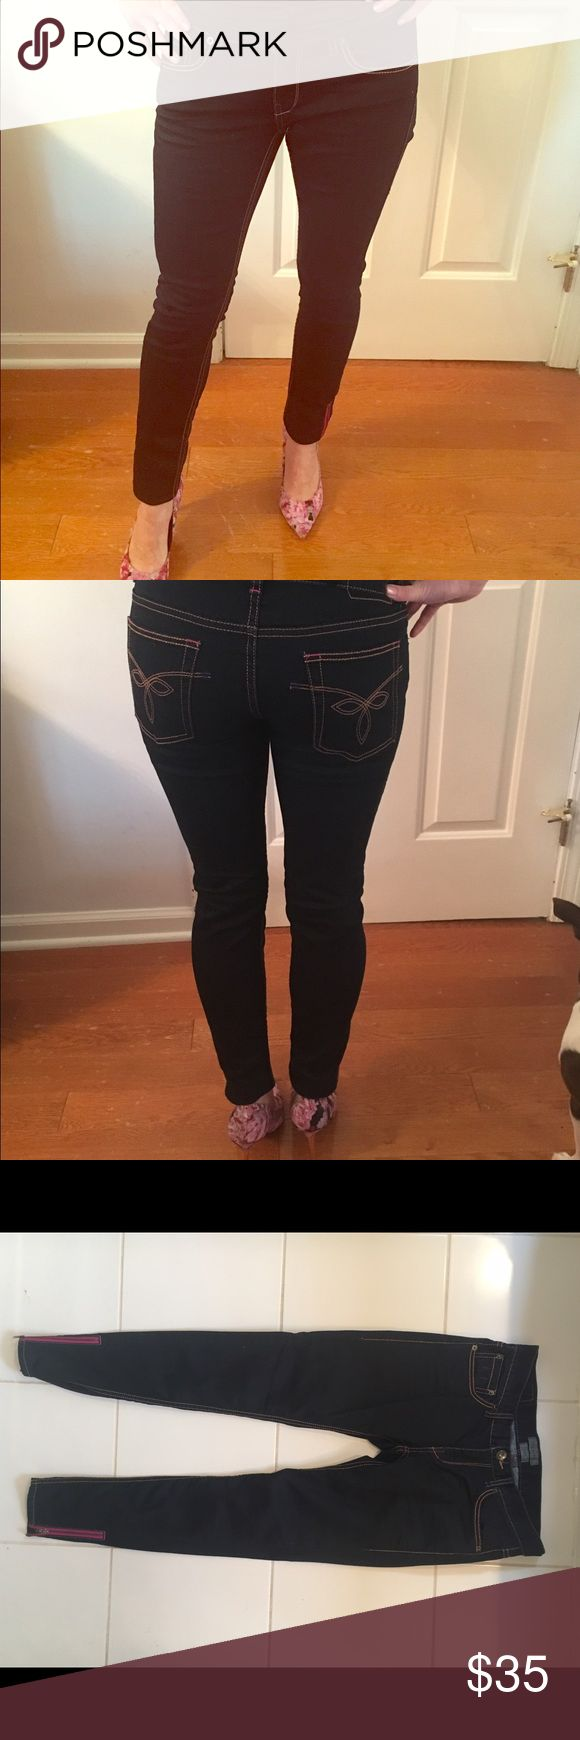 Ted baker jeans Ted baker jeans with pink zipper embellishment Ted Baker Jeans Skinny